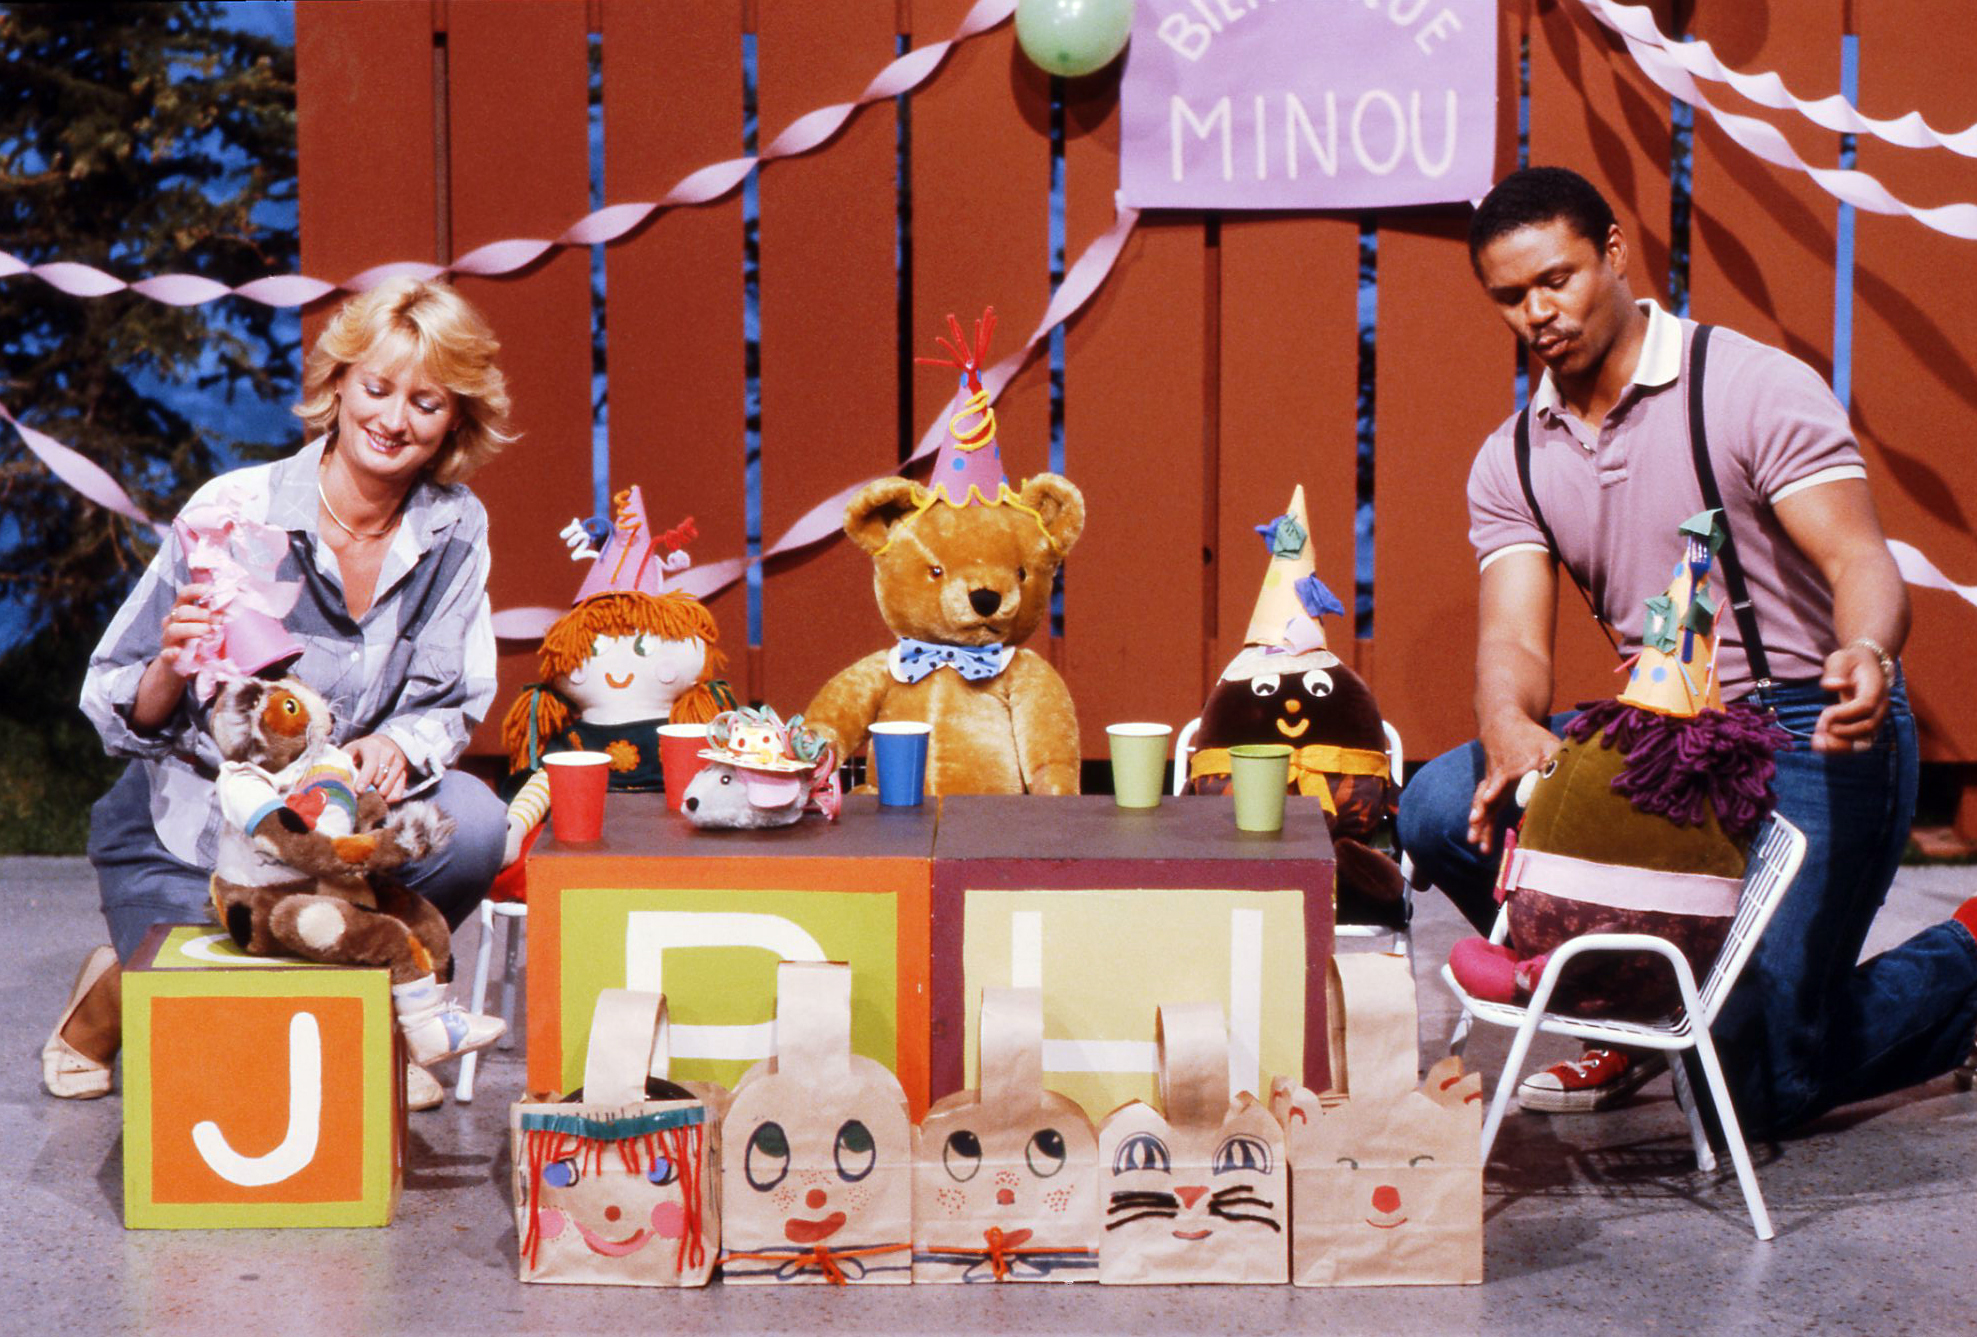 FileCindy Cook Johnnie Chase and the Toys from Polka Dot Door.jpg  sc 1 st  Wikimedia Commons & File:Cindy Cook Johnnie Chase and the Toys from Polka Dot Door ...